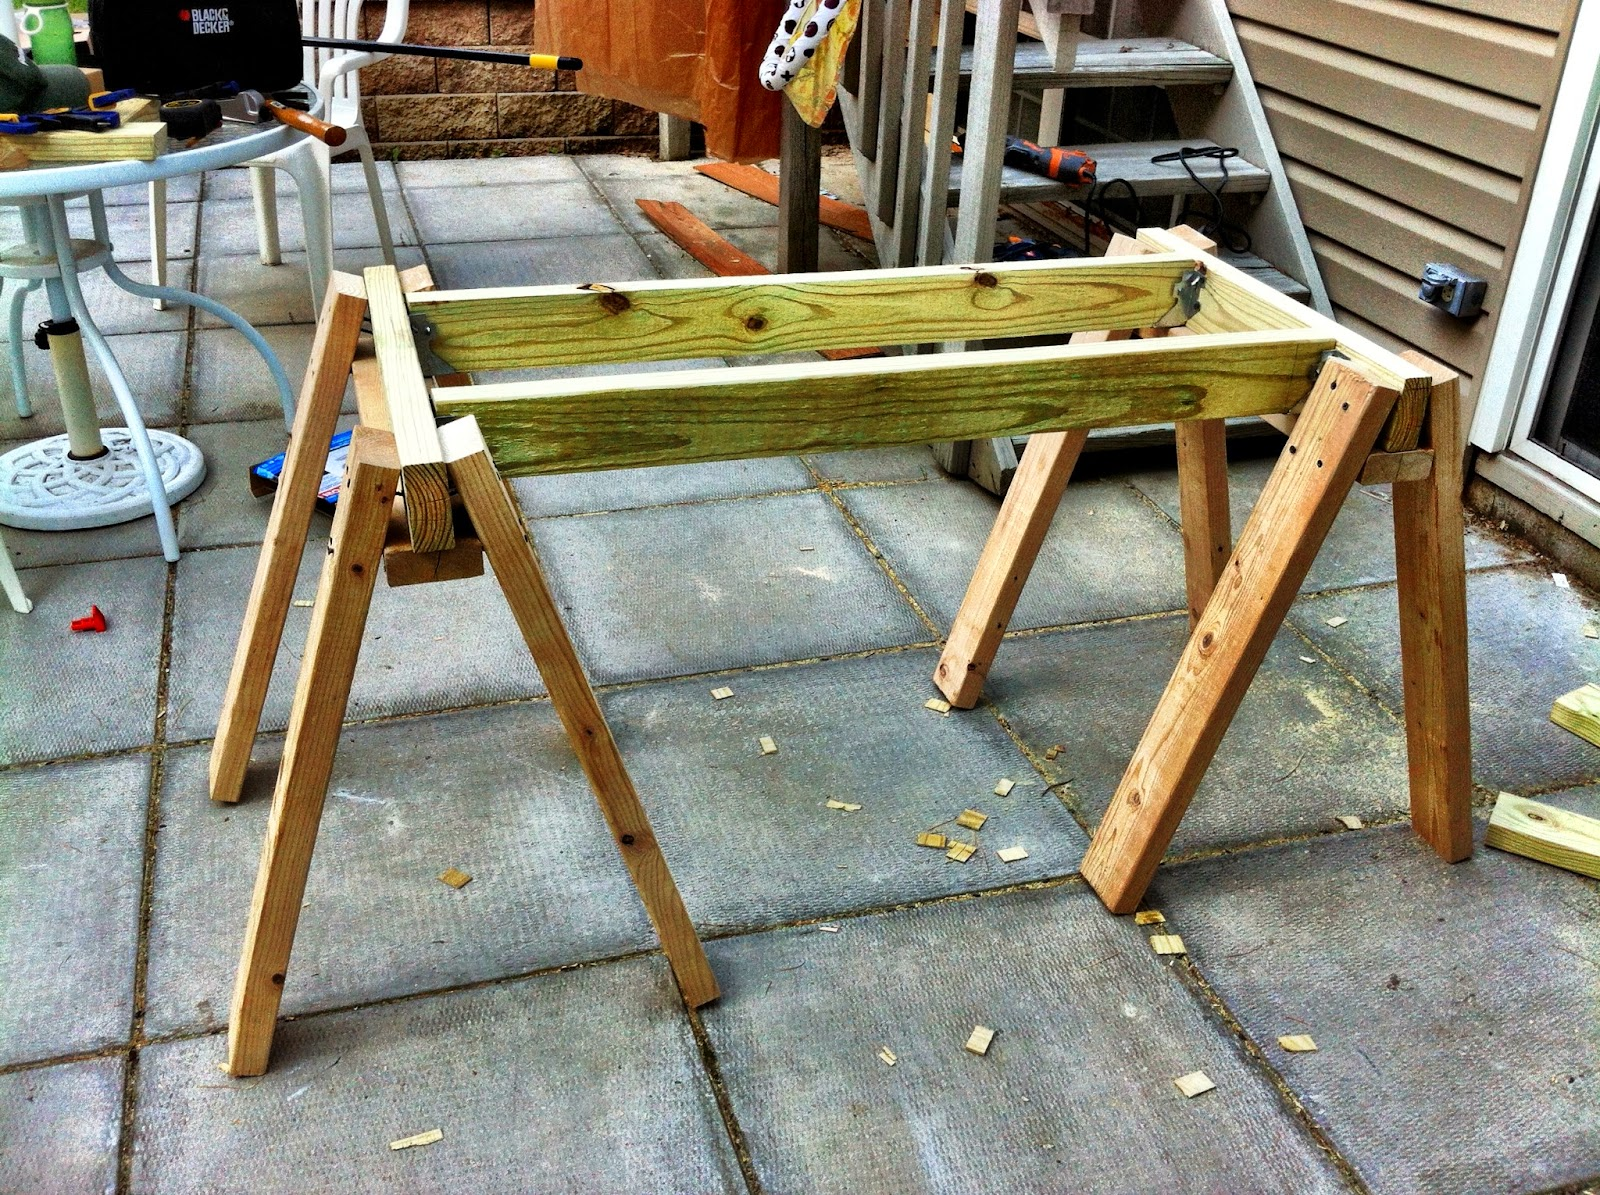 Here Is The Frame Of The Sawhorse Table.